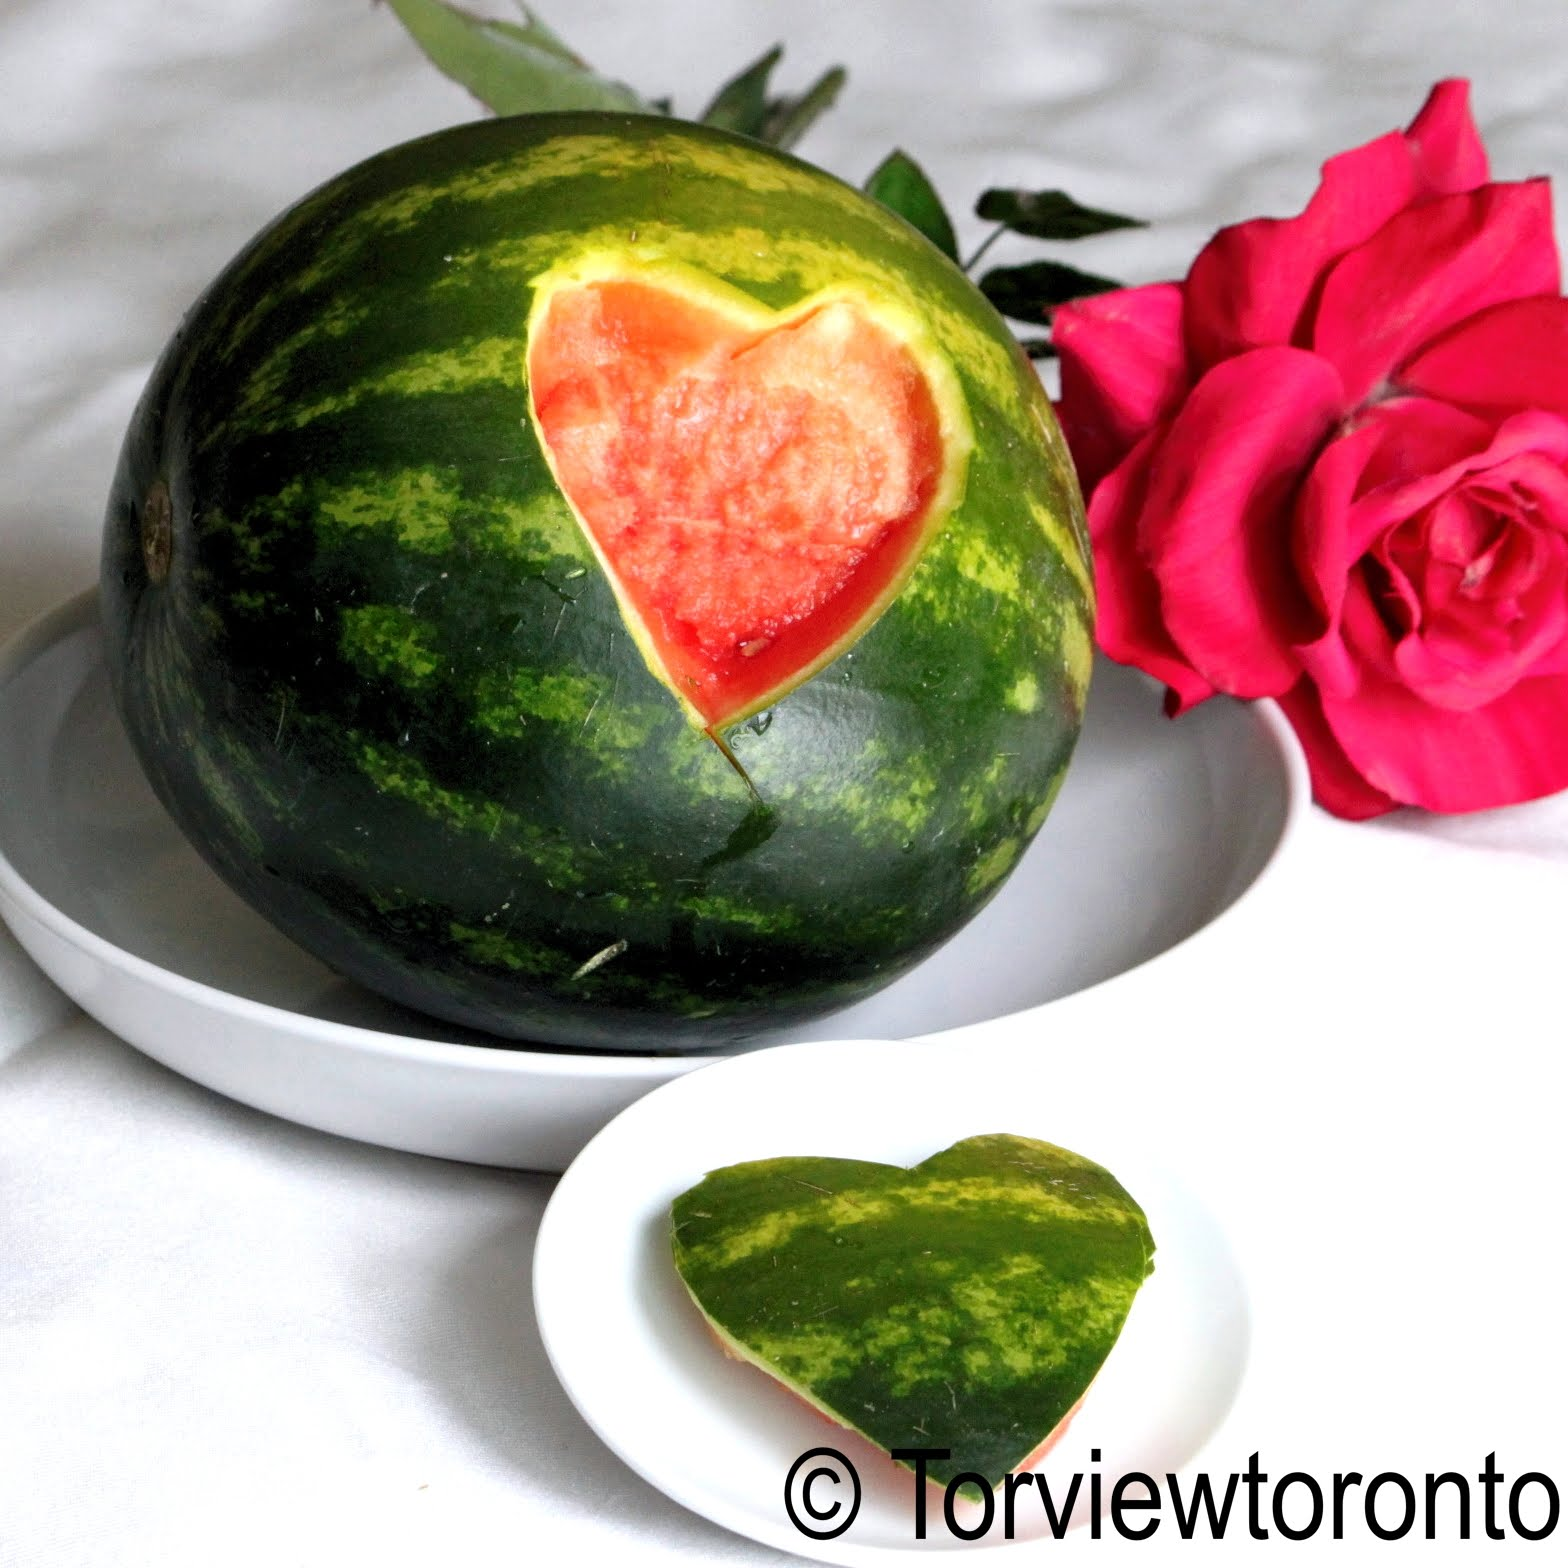 Torviewtoronto watermelon carving